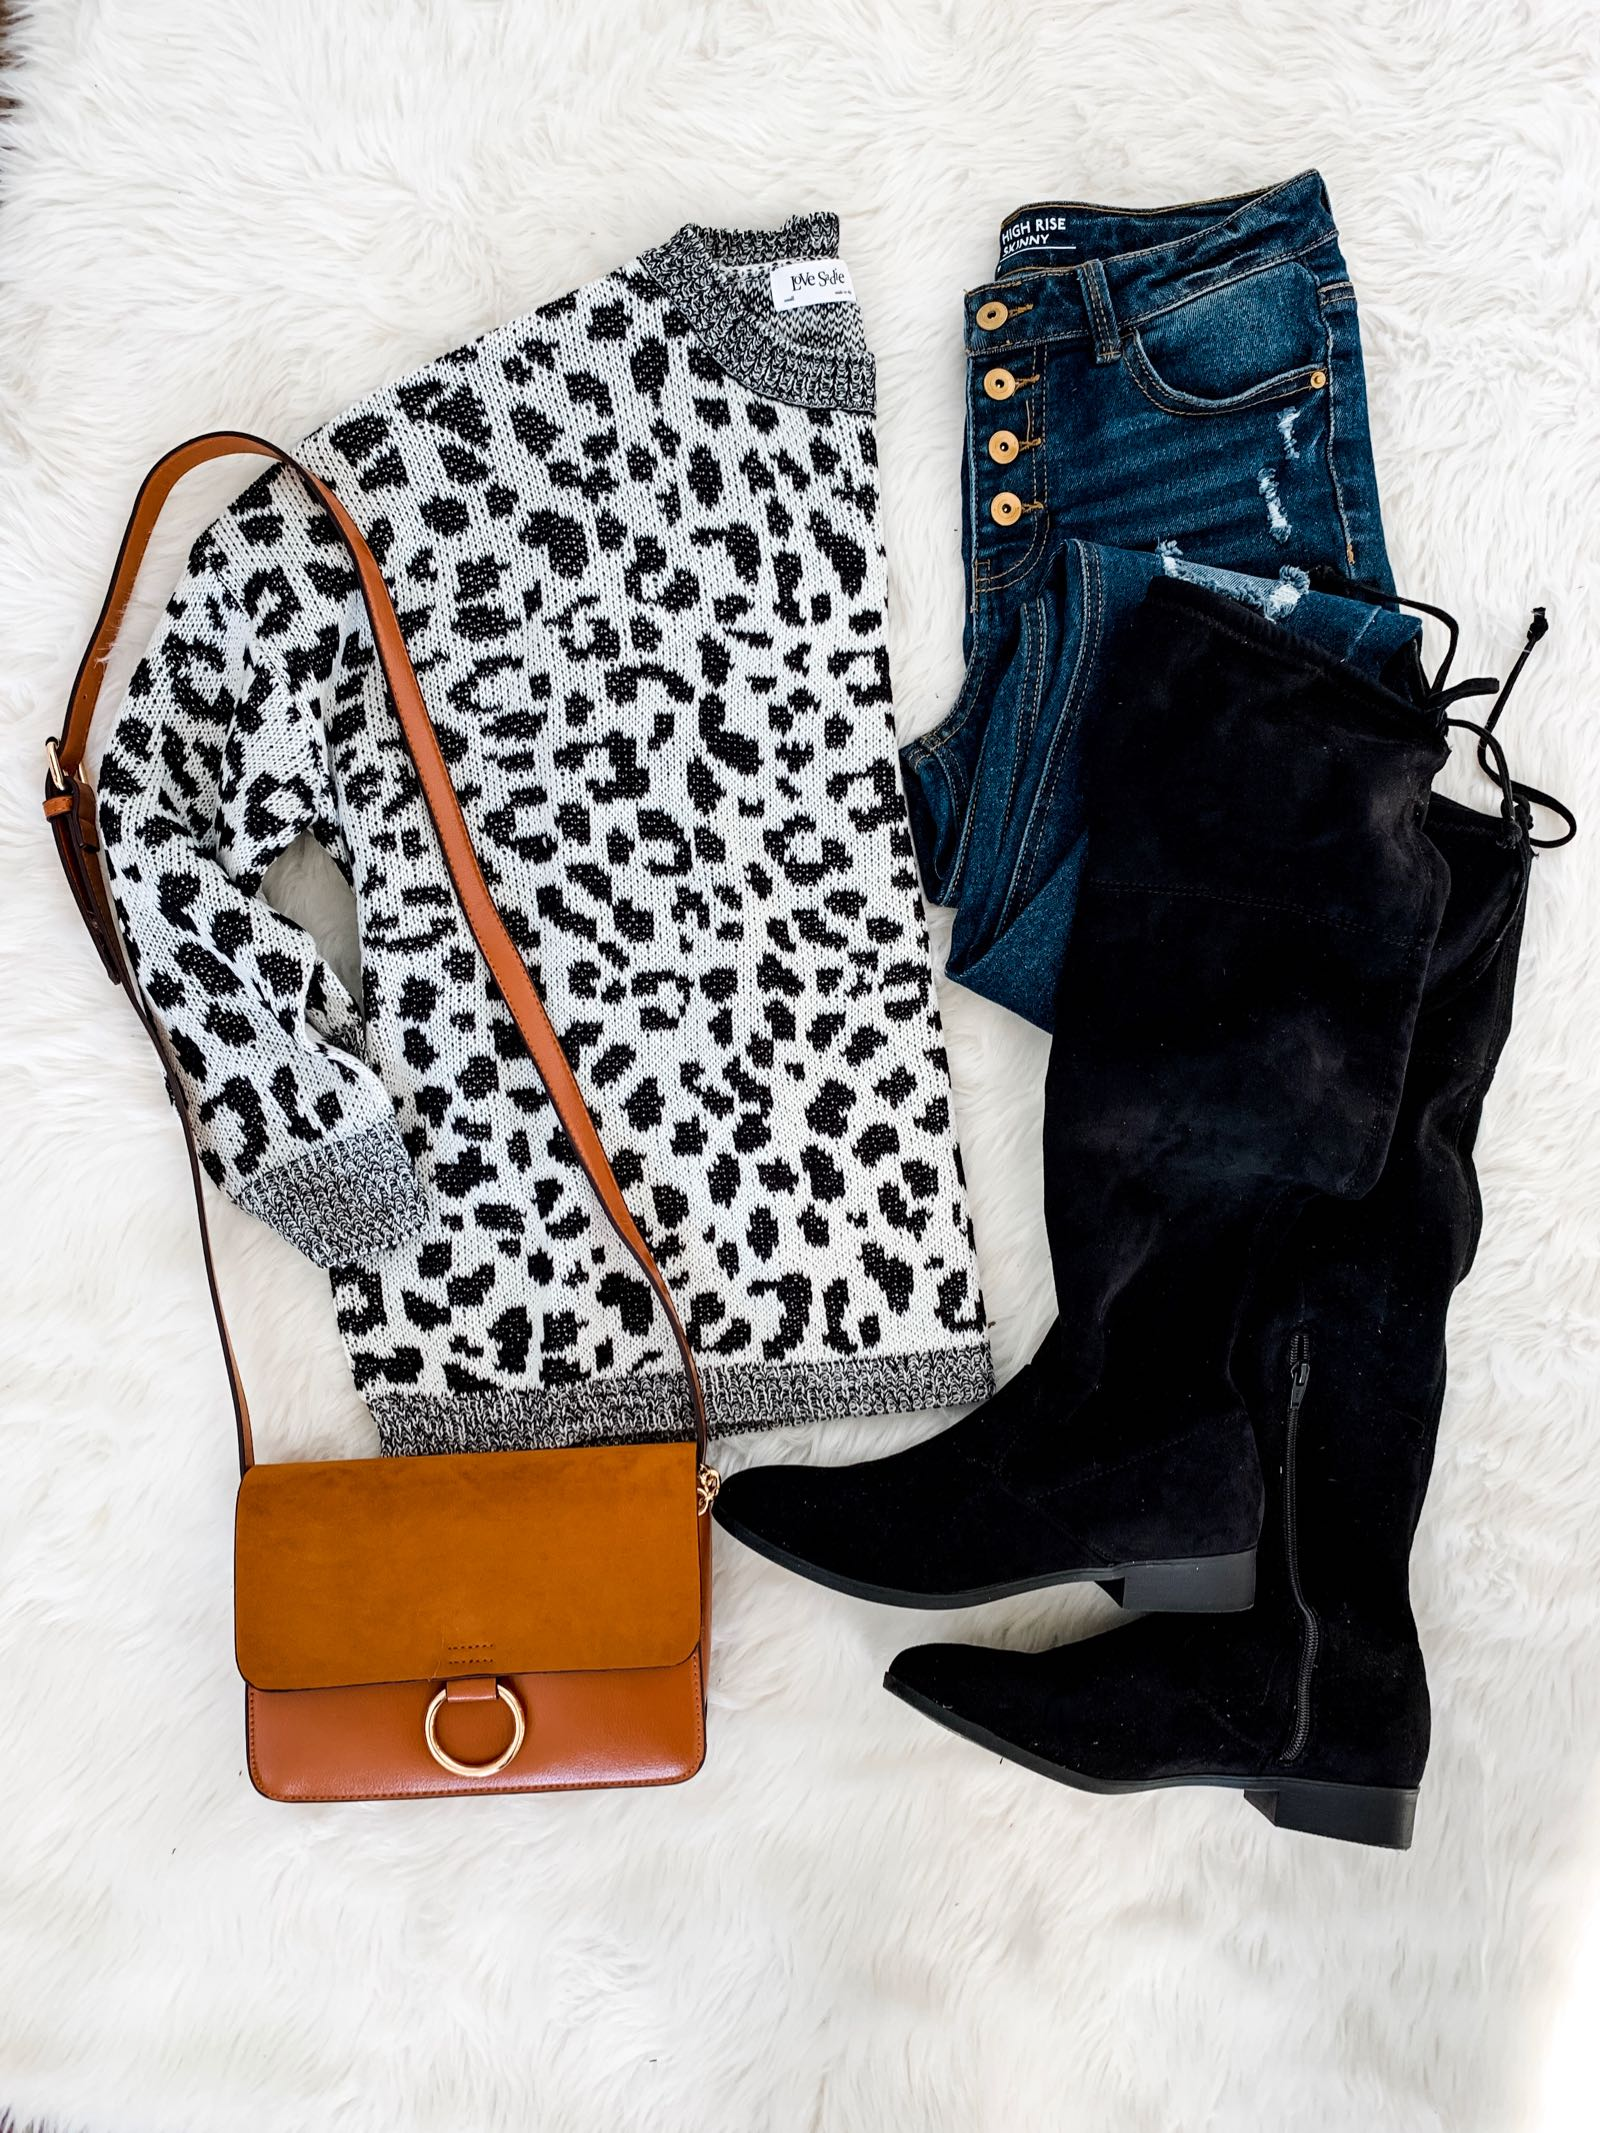 Leopard sweater for $19 and over the knee boots for $19 at Walmart!